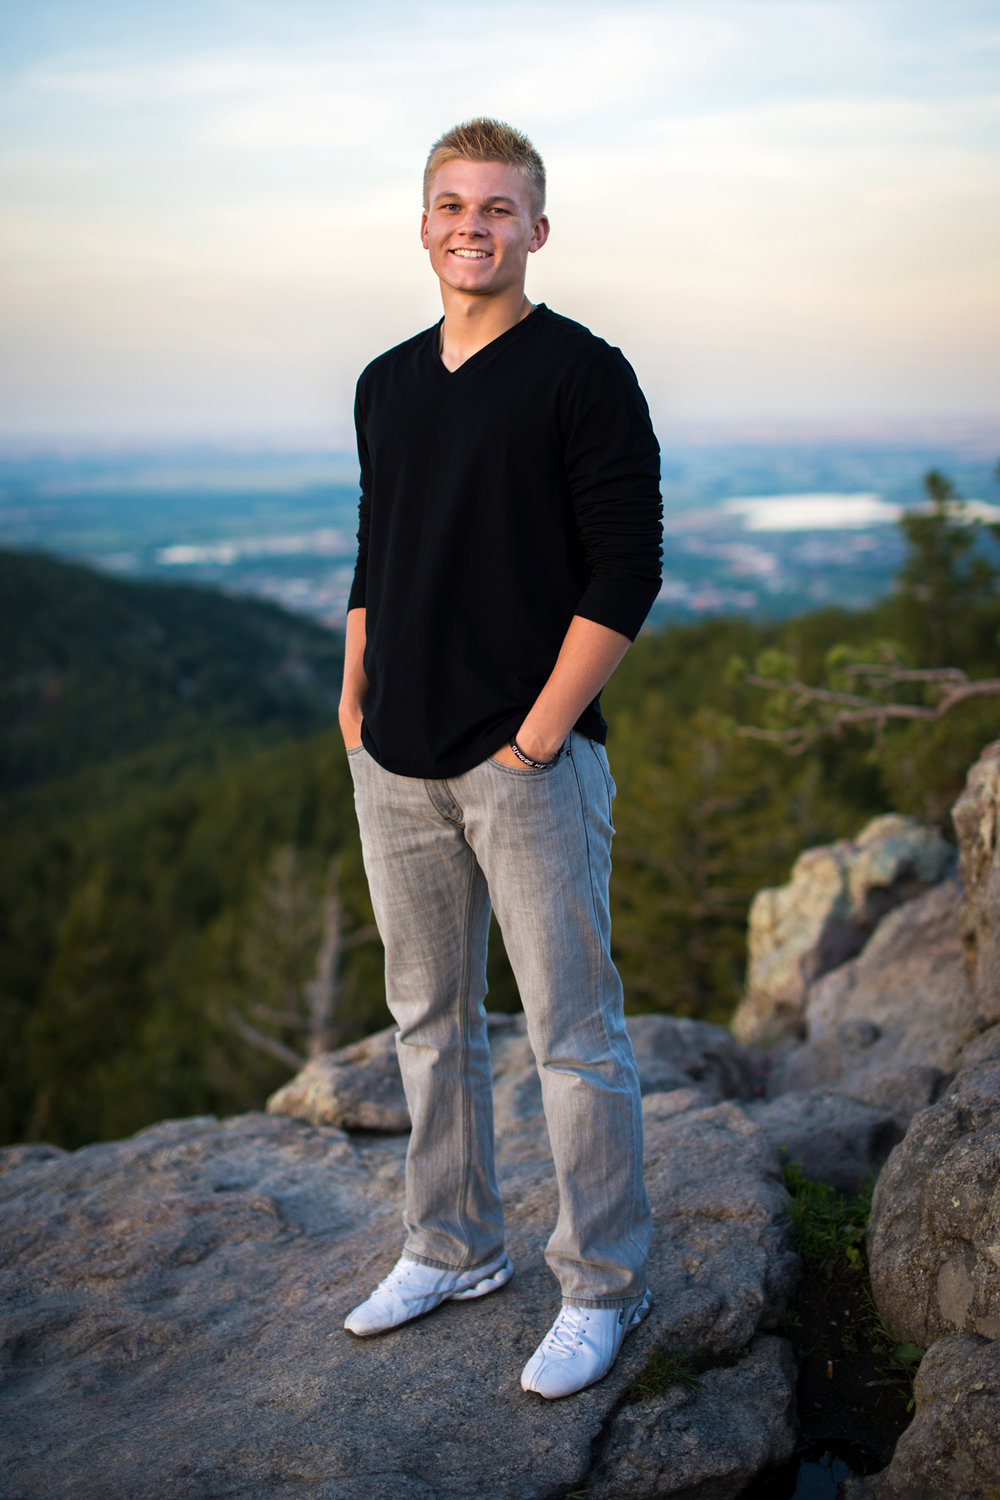 mountain-top-senior-portrait-longmont-niwot-colorado.jpg